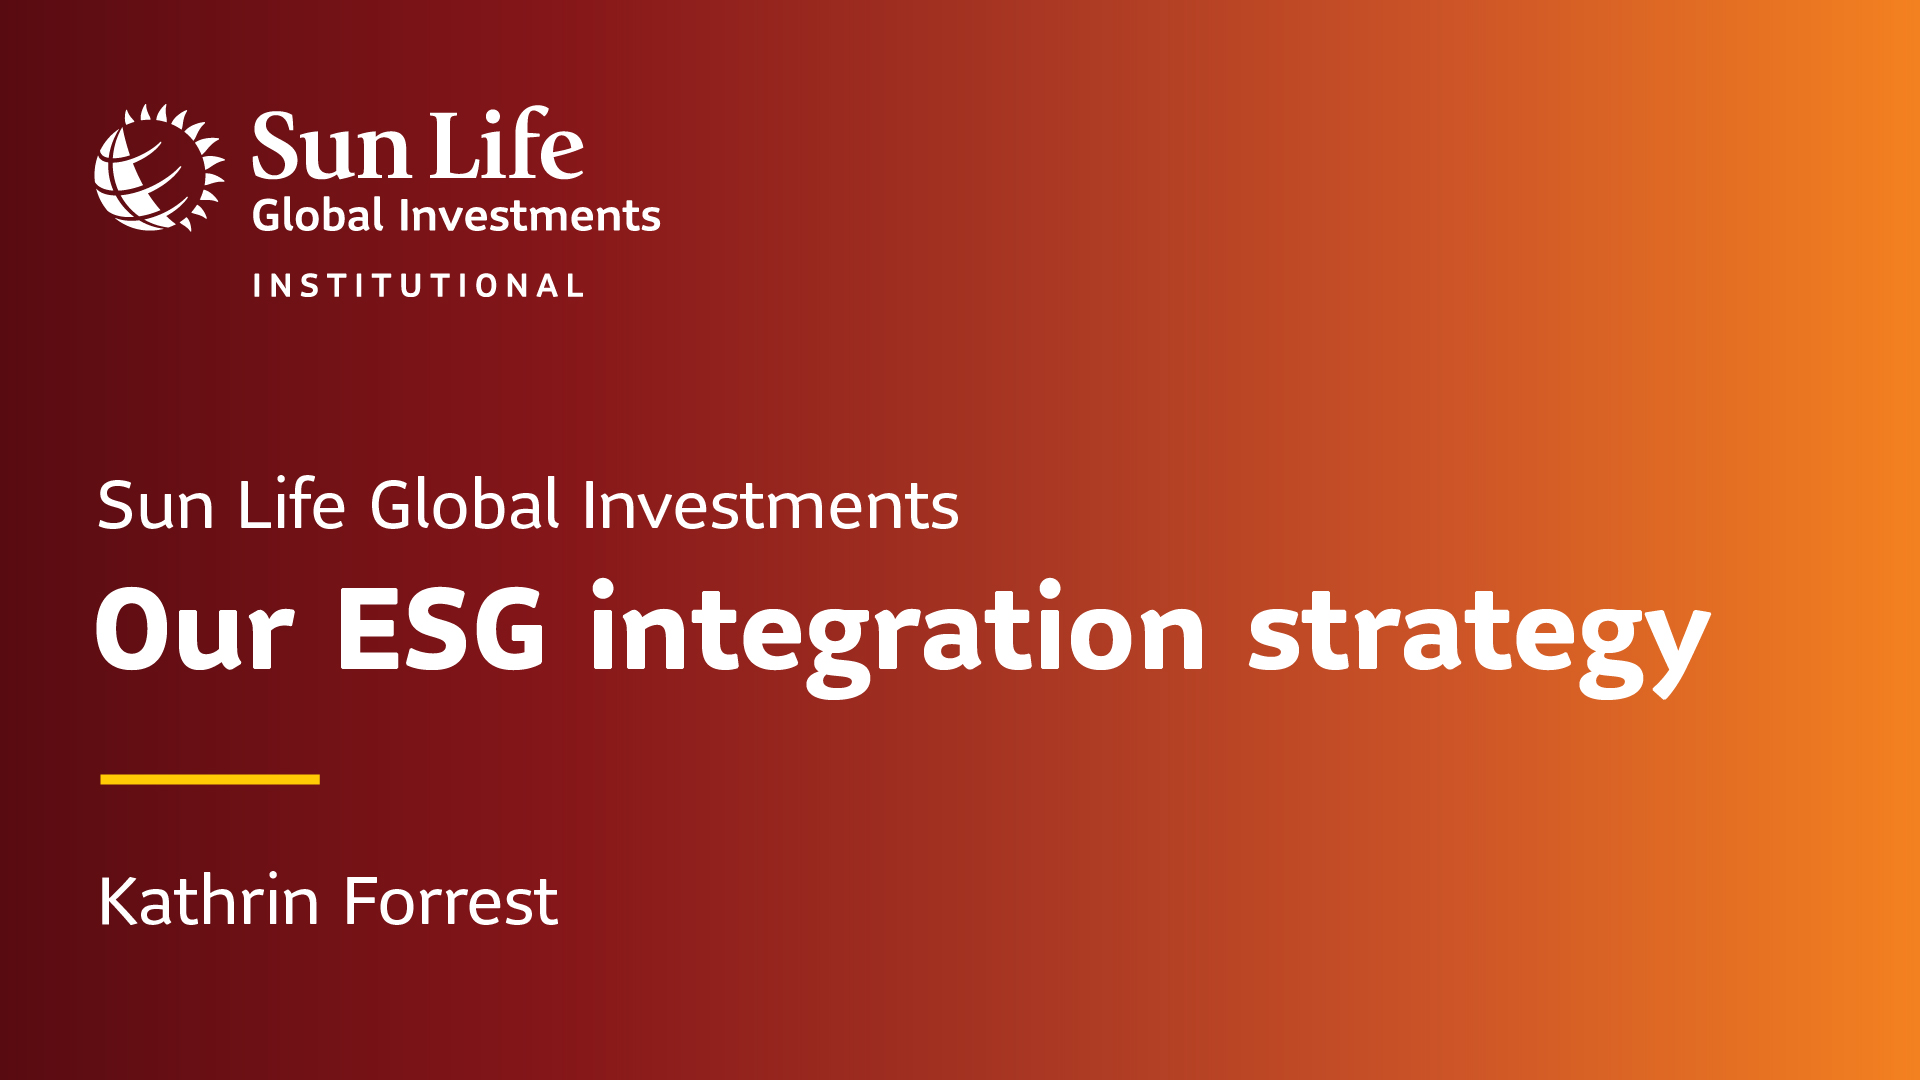 Our ESG integration strategy